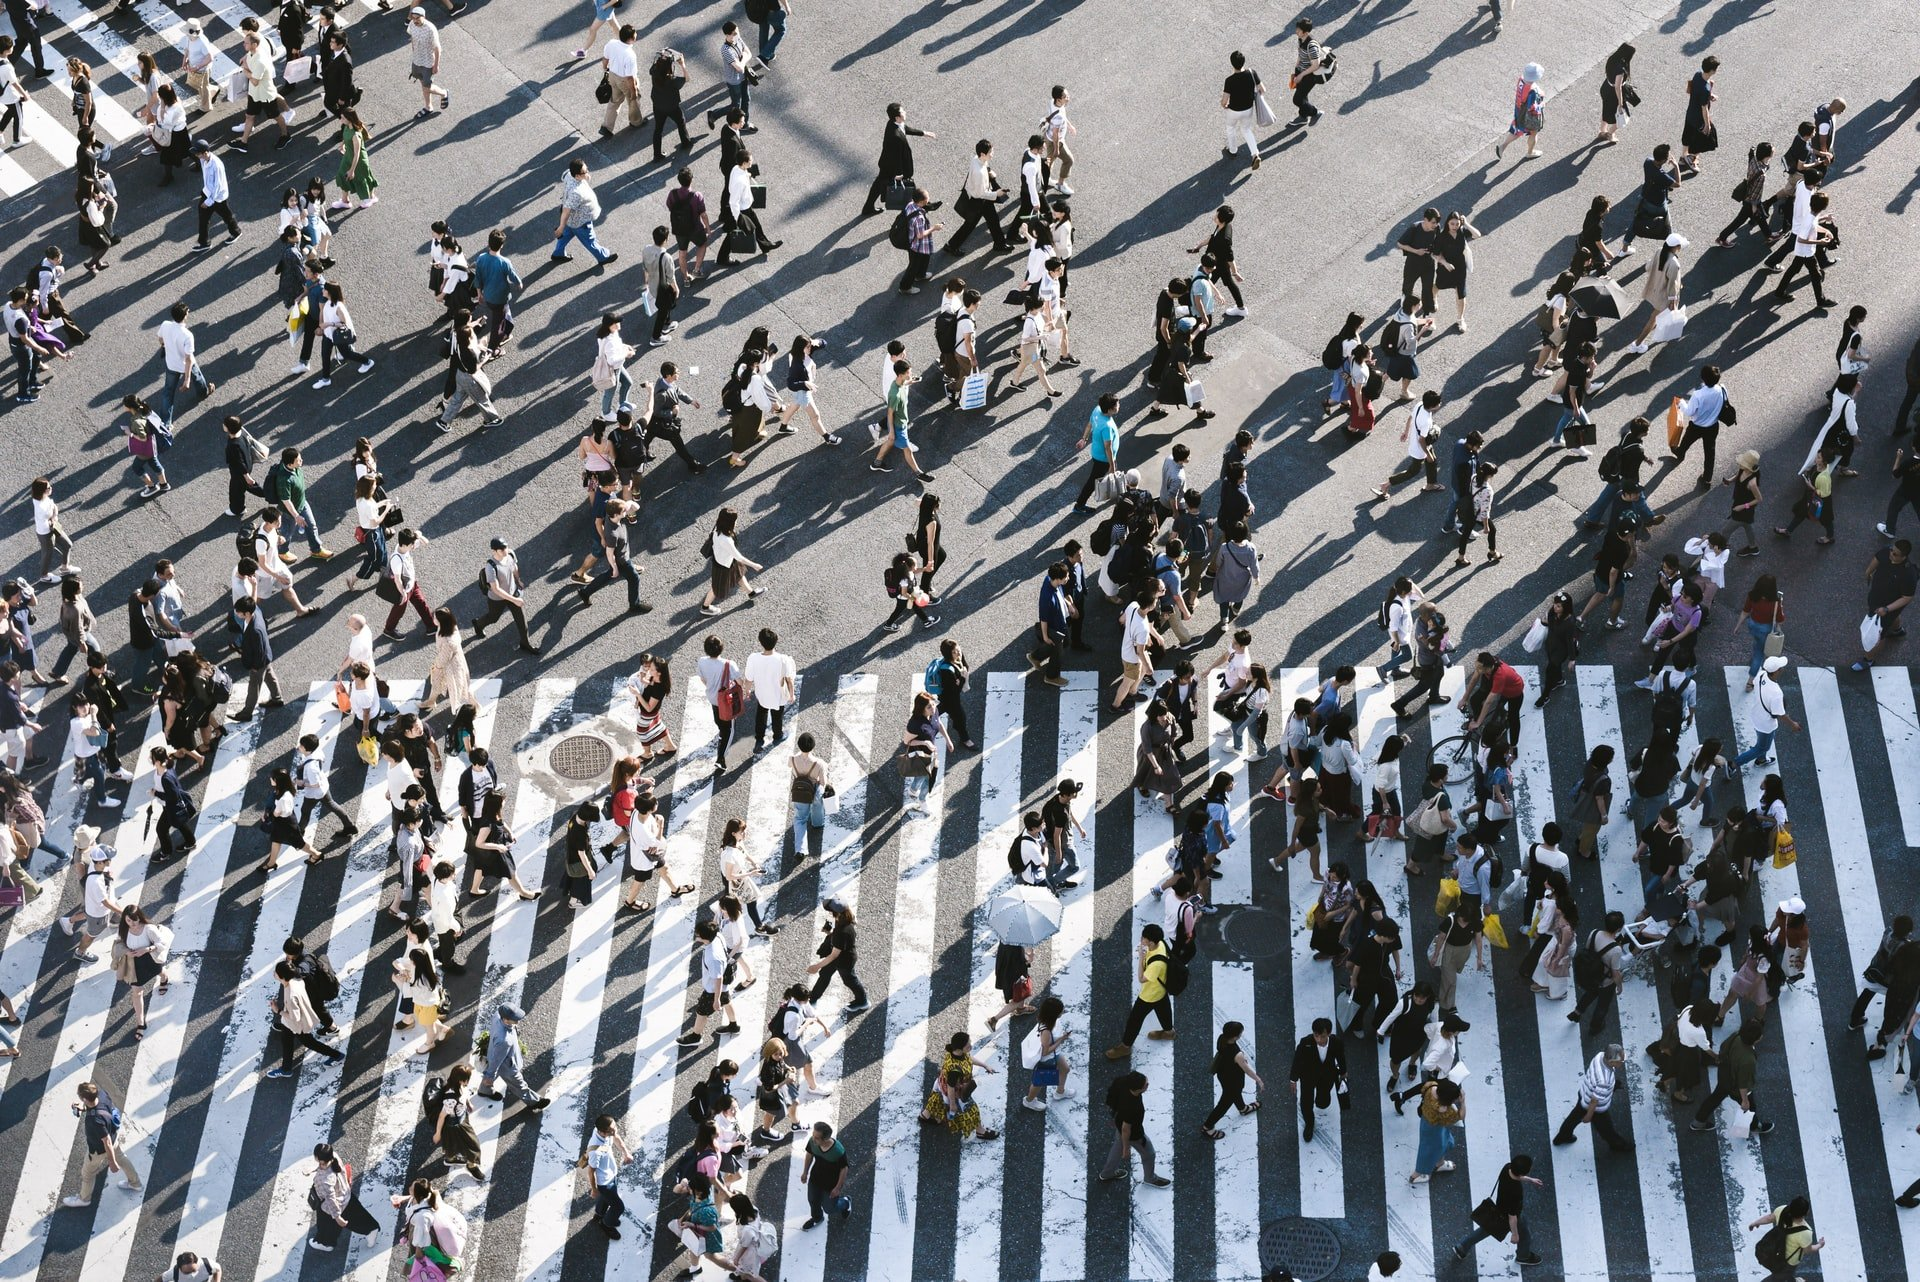 crowd of people crossing road in all directions